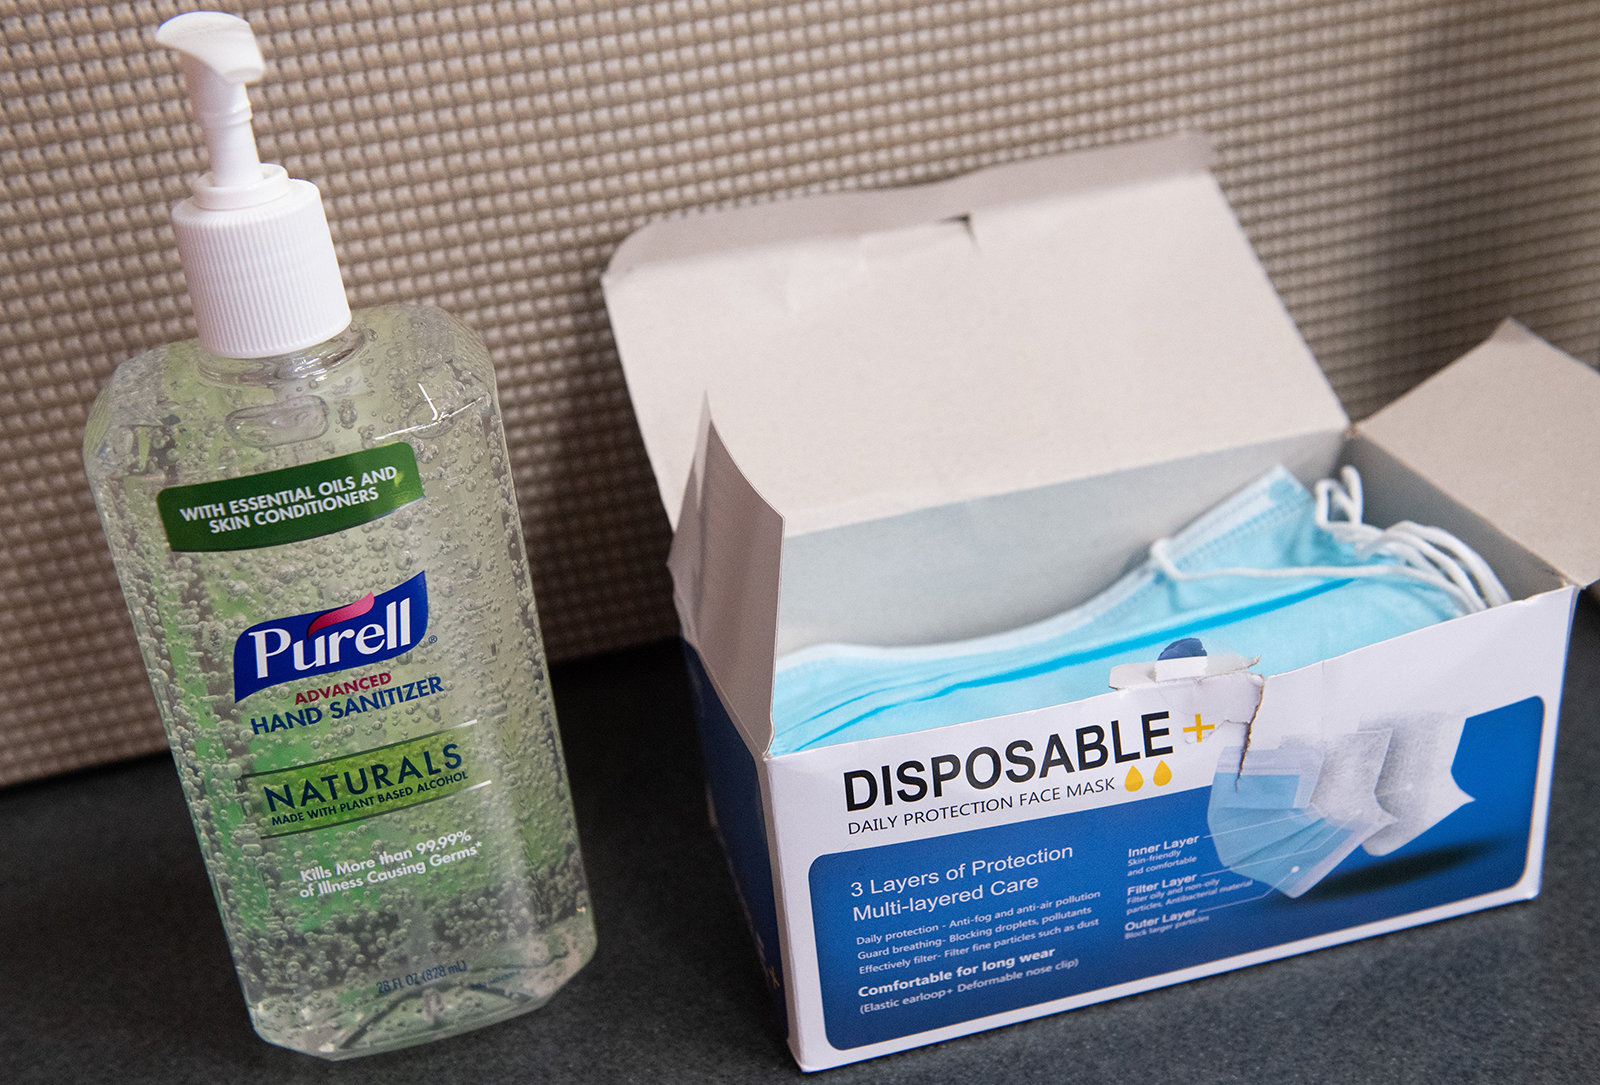 A bottle of Purell hand sanitizer and a box of disposable masks